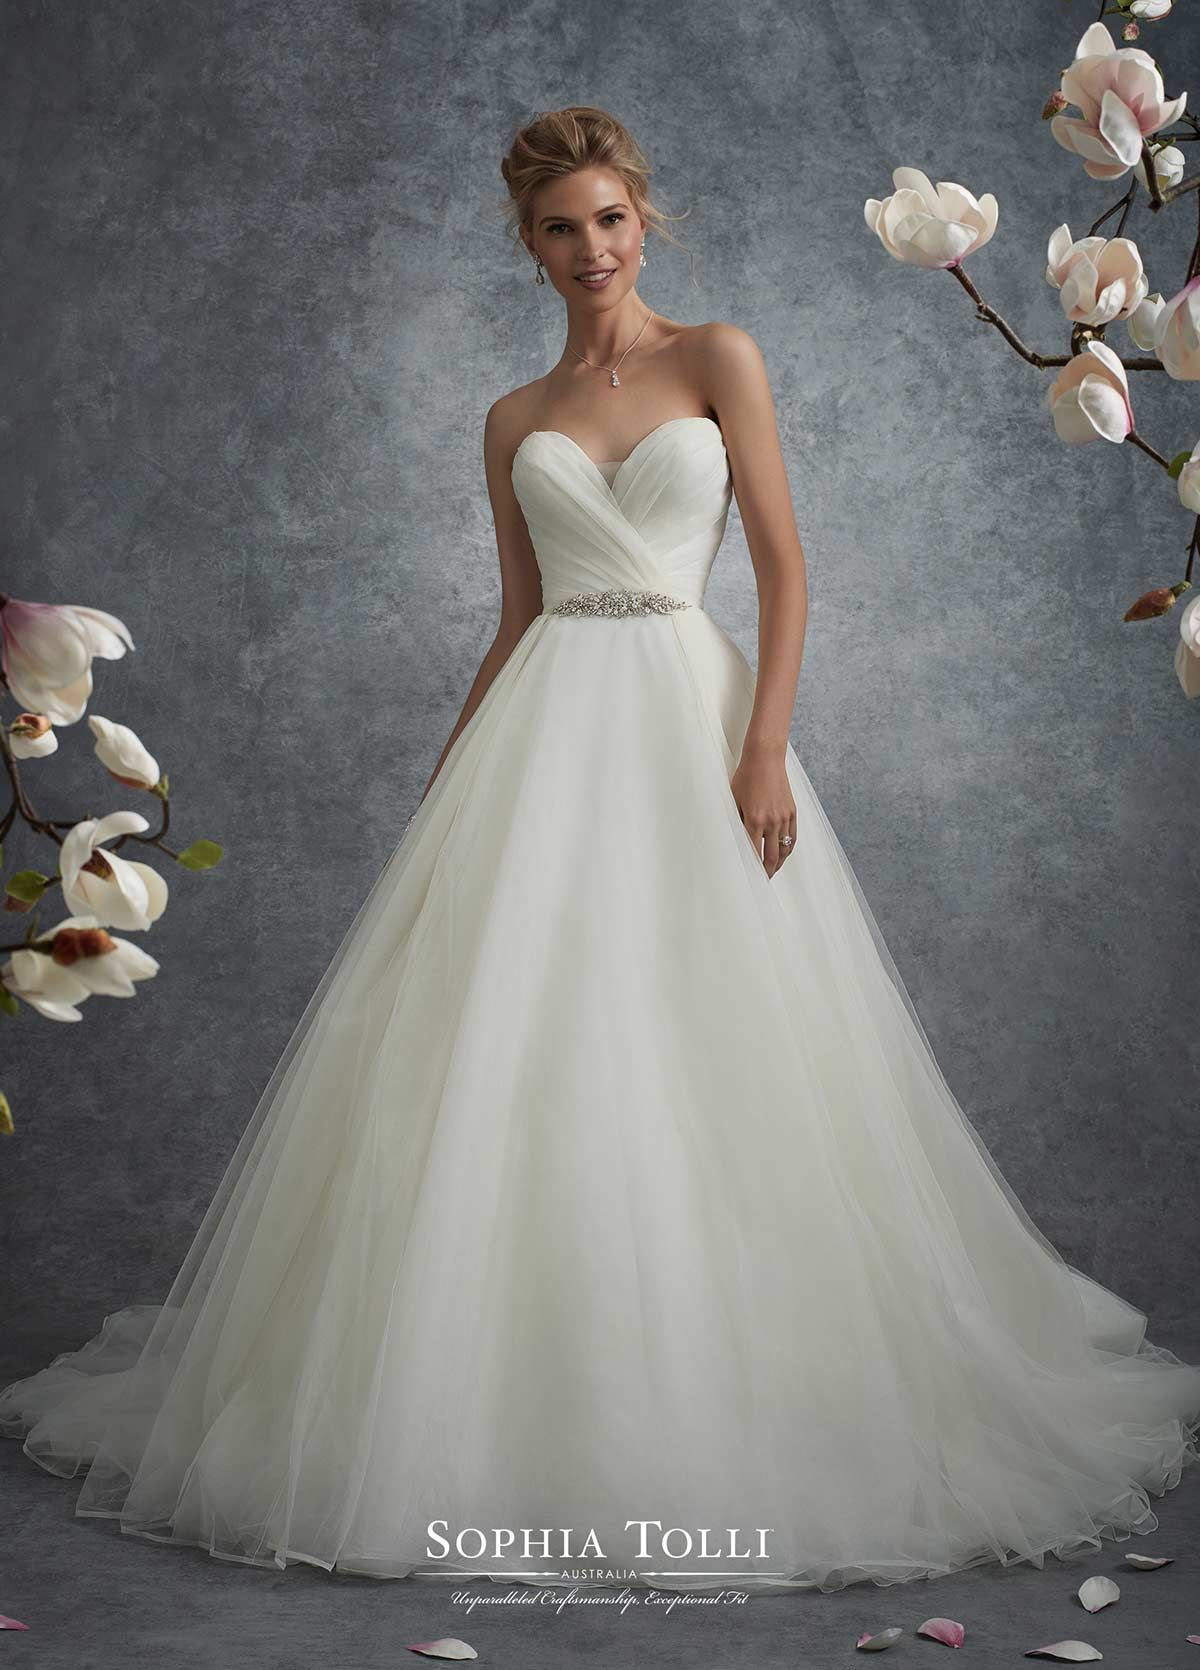 Sophia Tolli Theia Size 14 Was 1320 Now 660 Sophia Tolli Wedding Dresses Ball Gowns Wedding Bridal Dresses